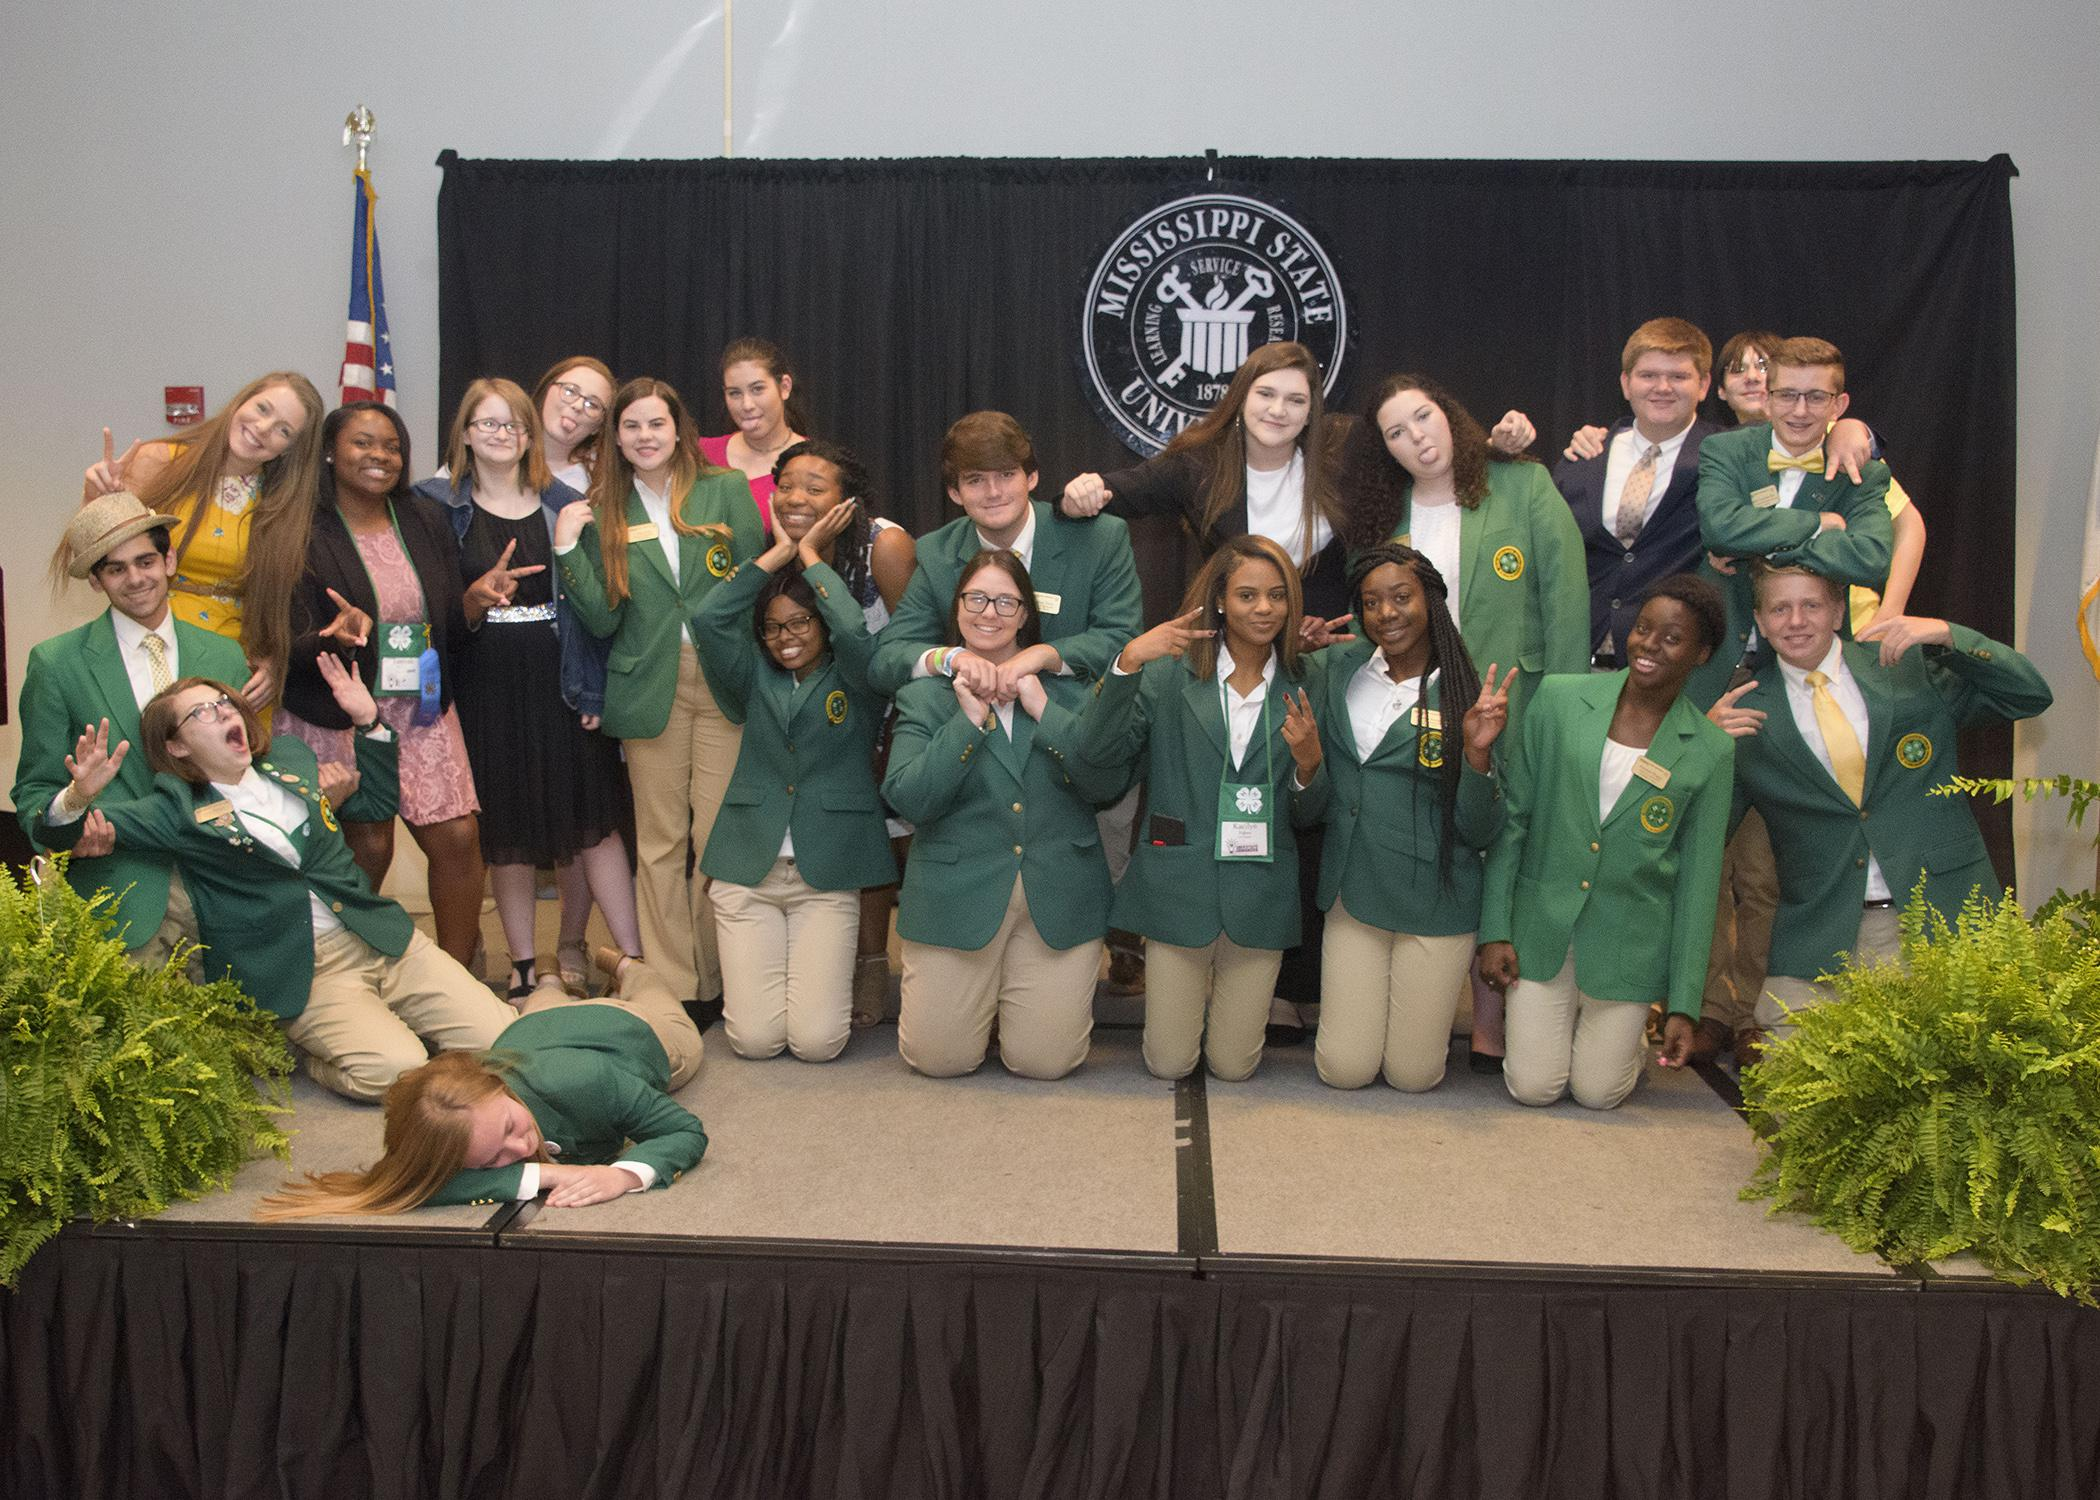 A group of 4-H'ers make silly gestures.